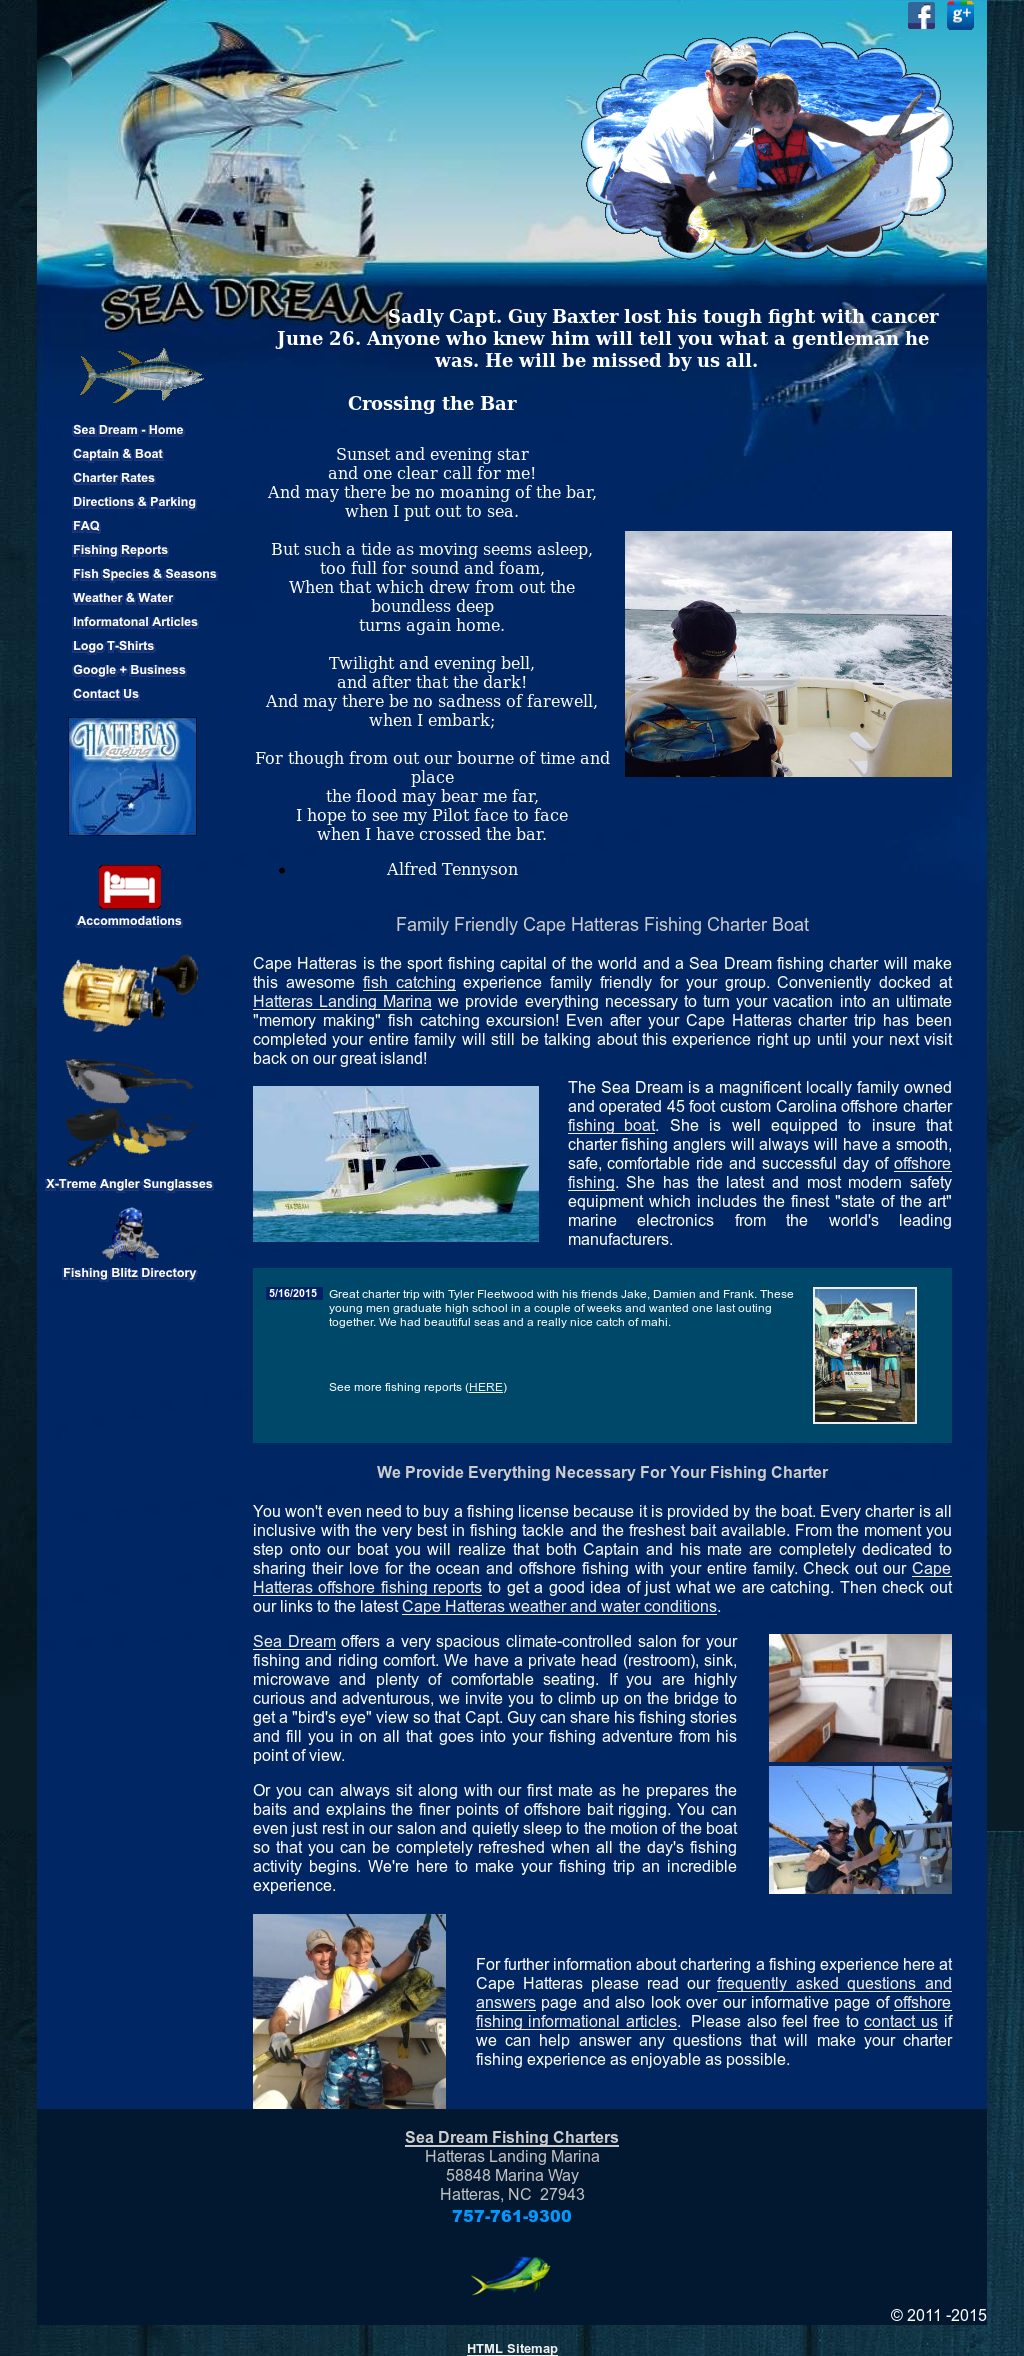 Sea Dream Fishing Competitors, Revenue and Employees - Owler Company